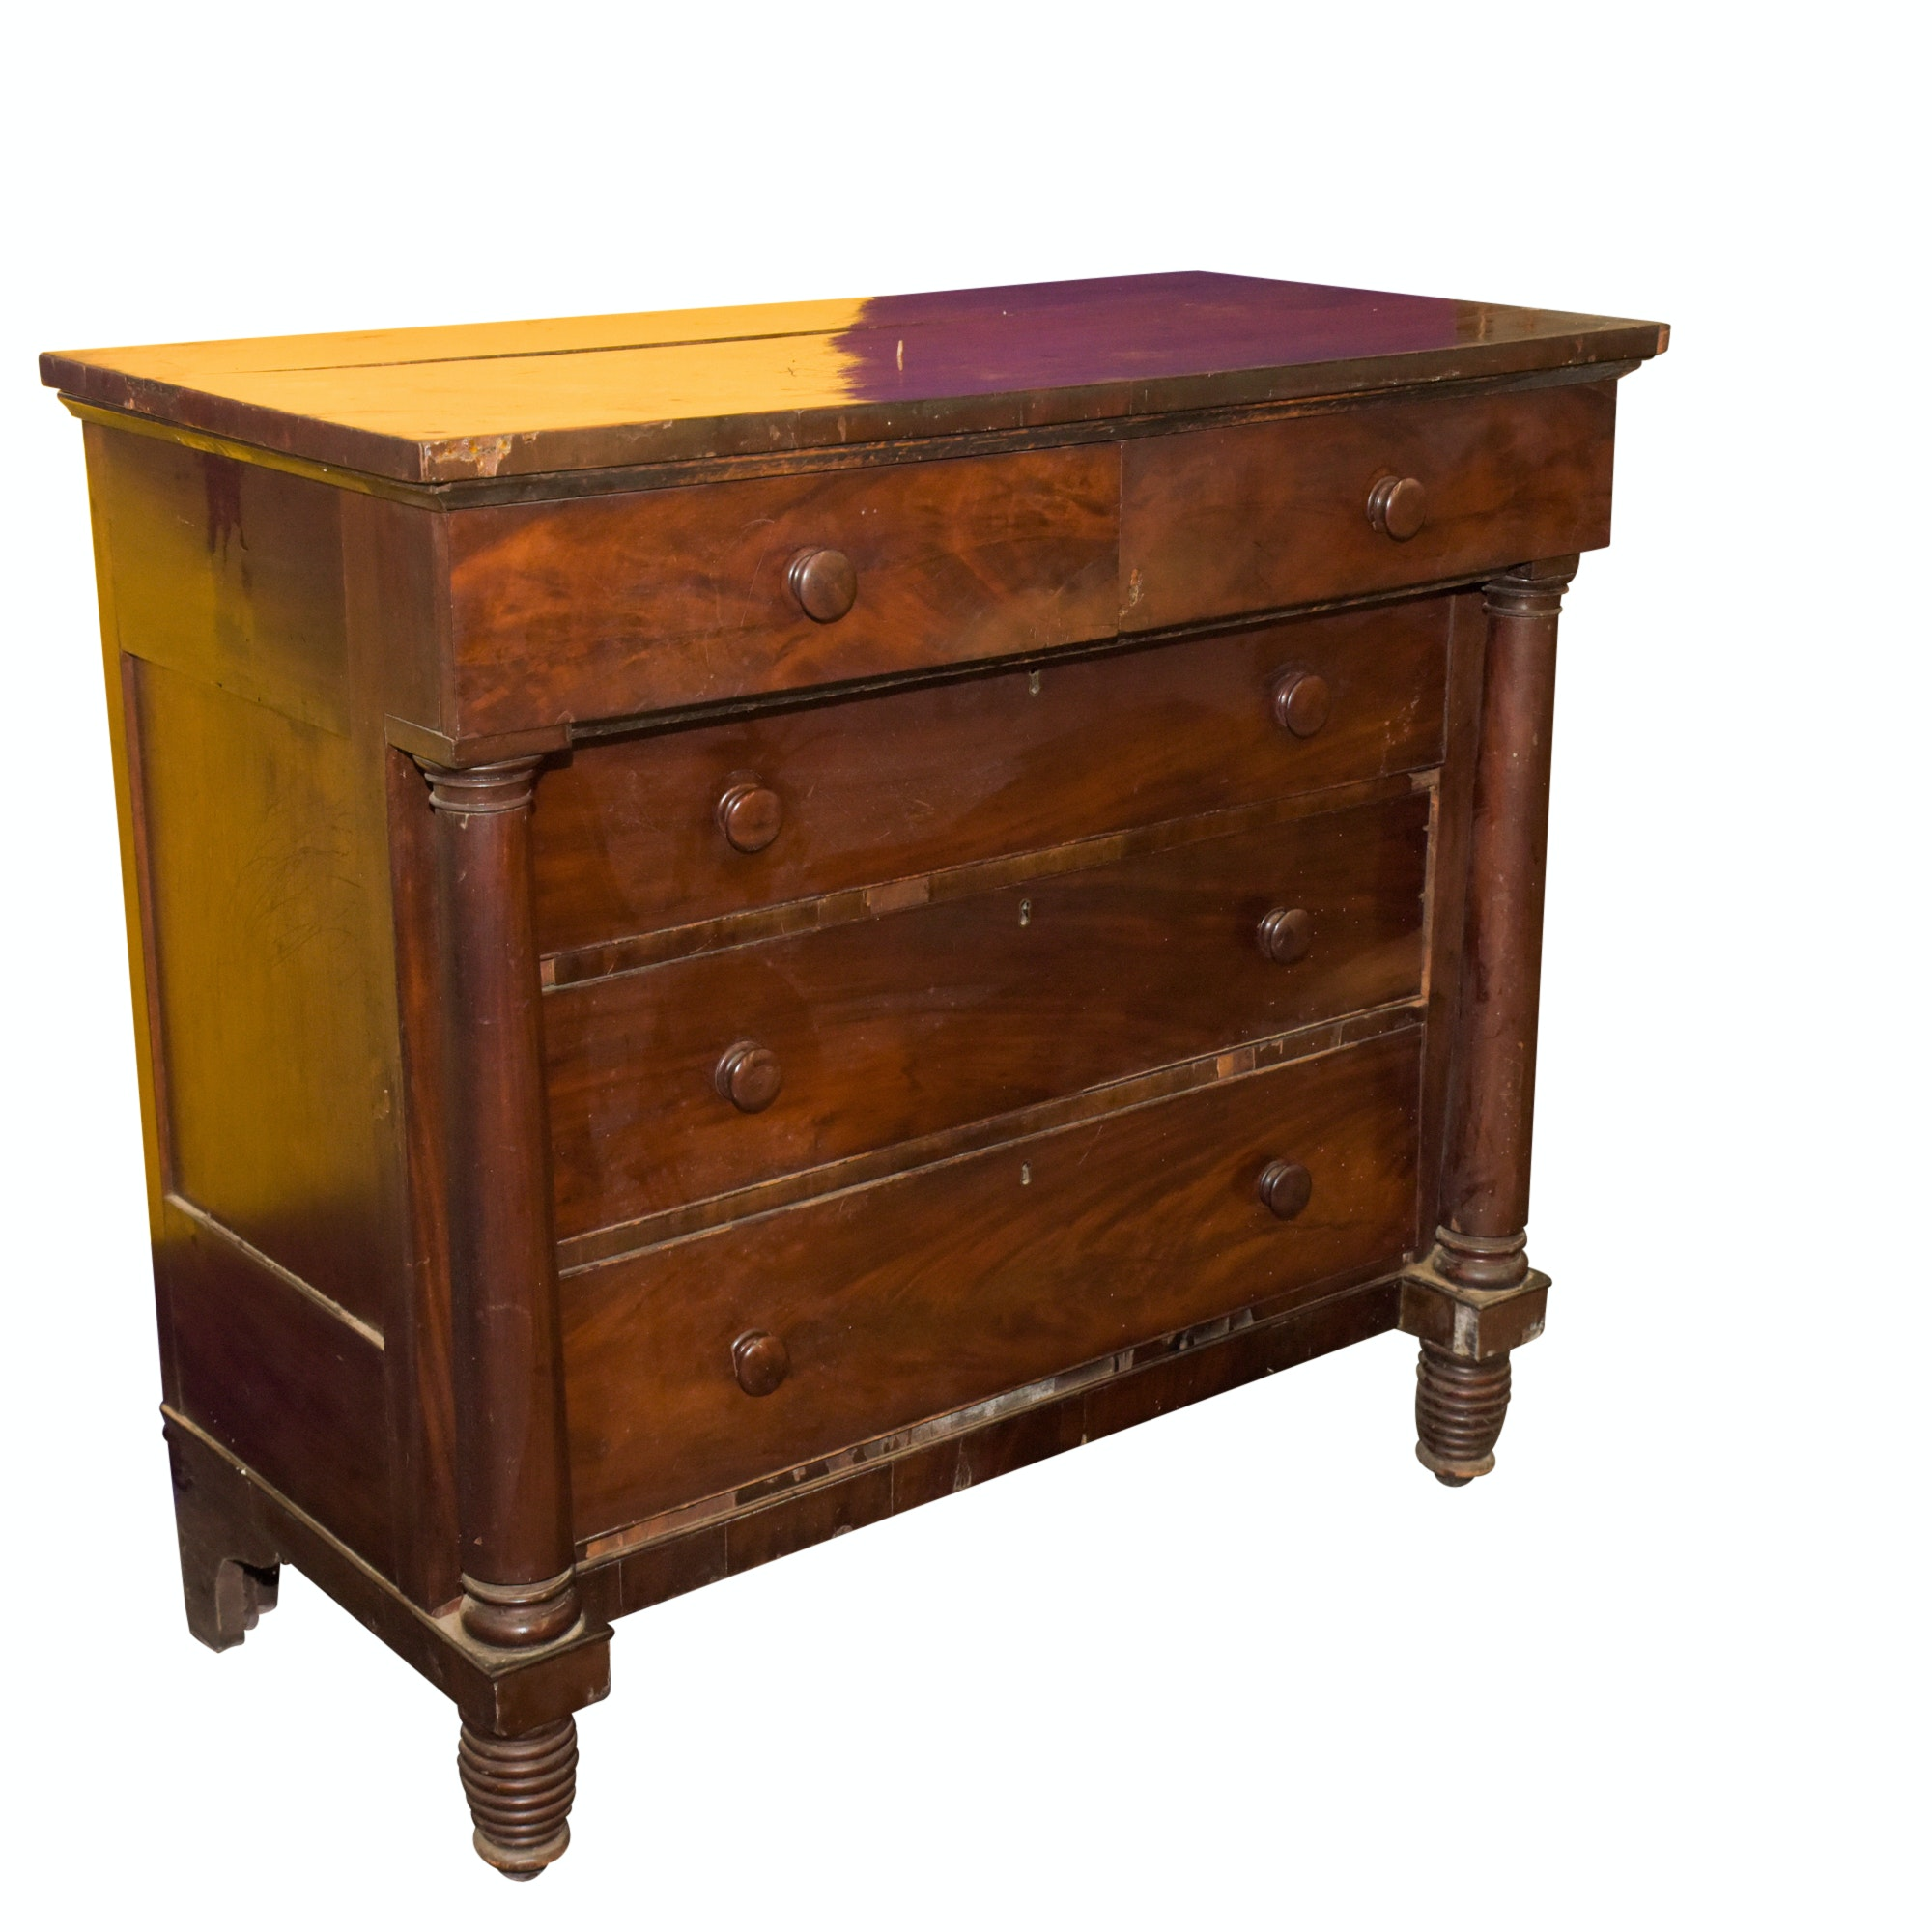 Vintage Empire Style Mahogany Chest of Drawers